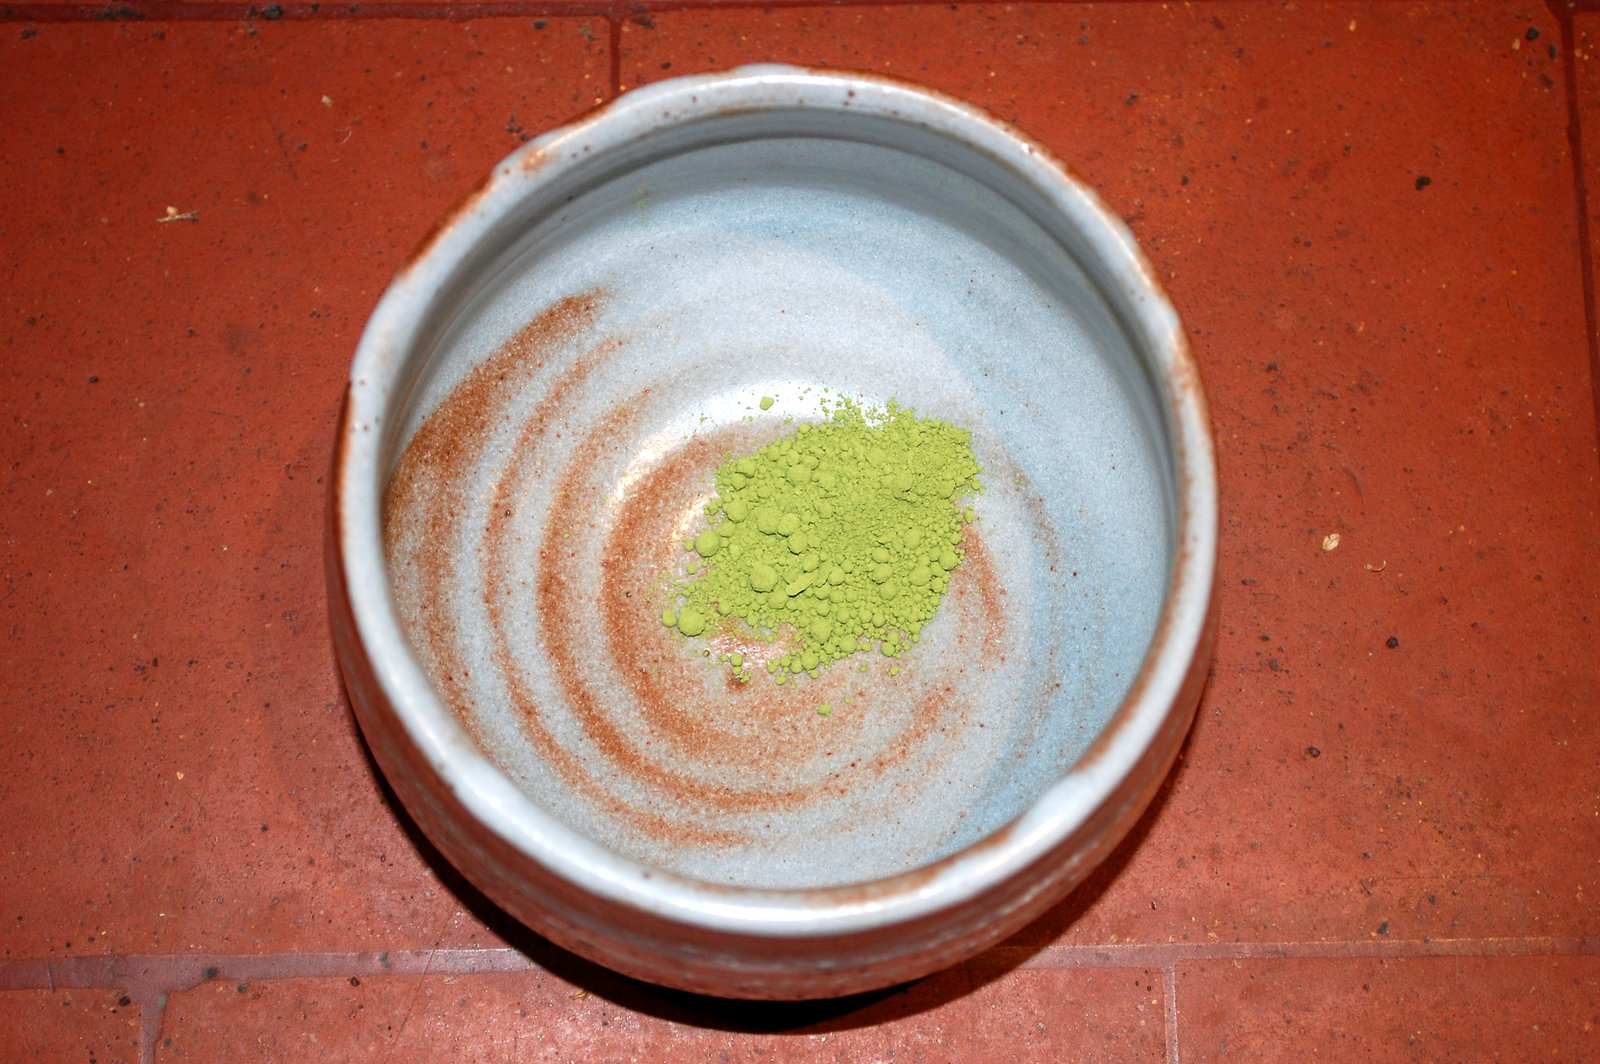 Place The Matcha Tea Into The Tea Bowl